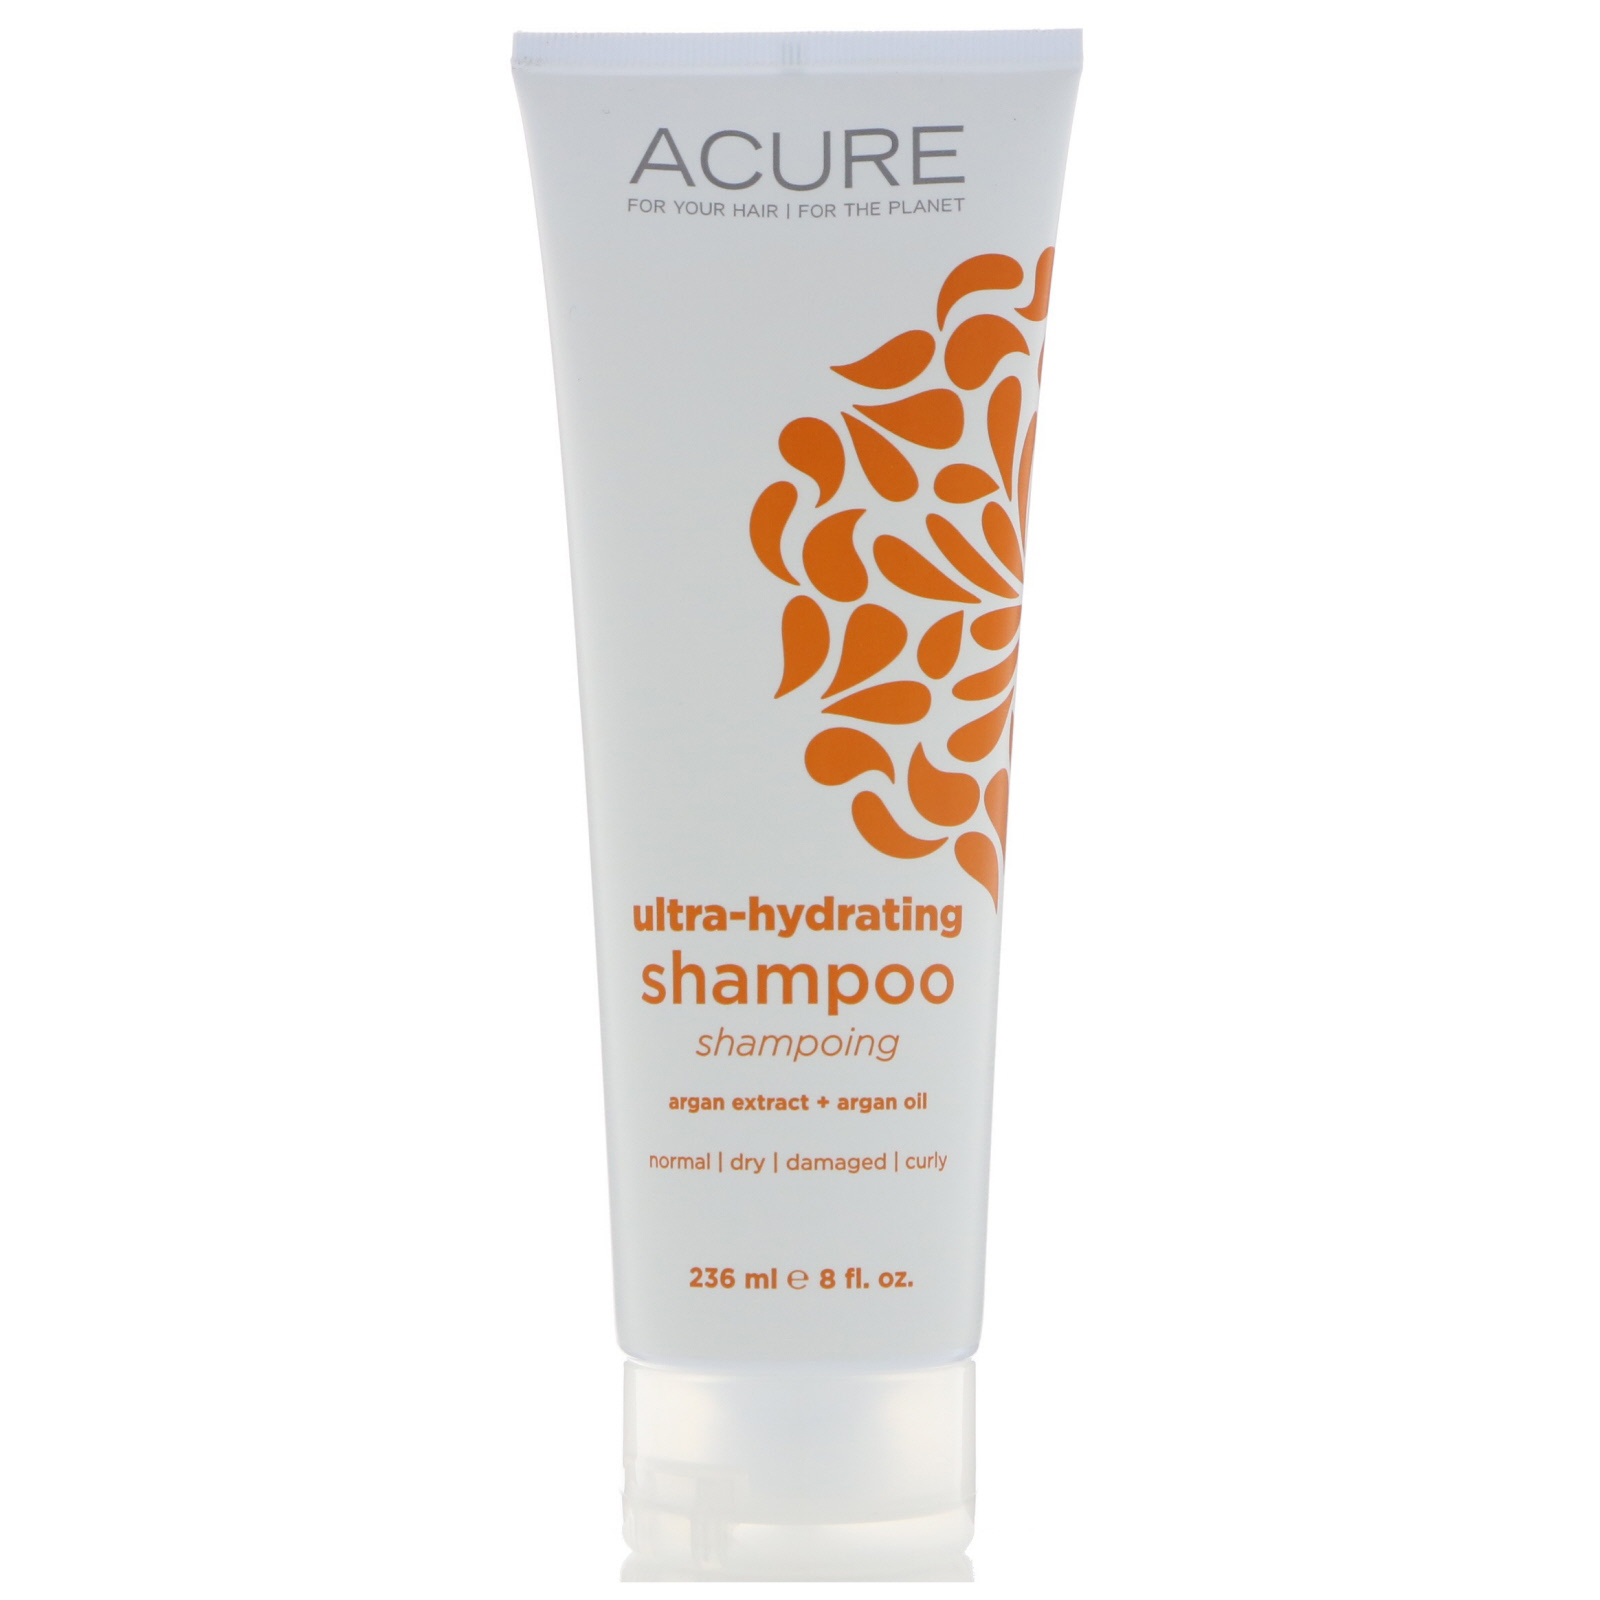 Acure Ultra Hydrating Shampoo Argan Extract Oil 8 Fl Oz Clear Complete Soft Care Men 340 Ml